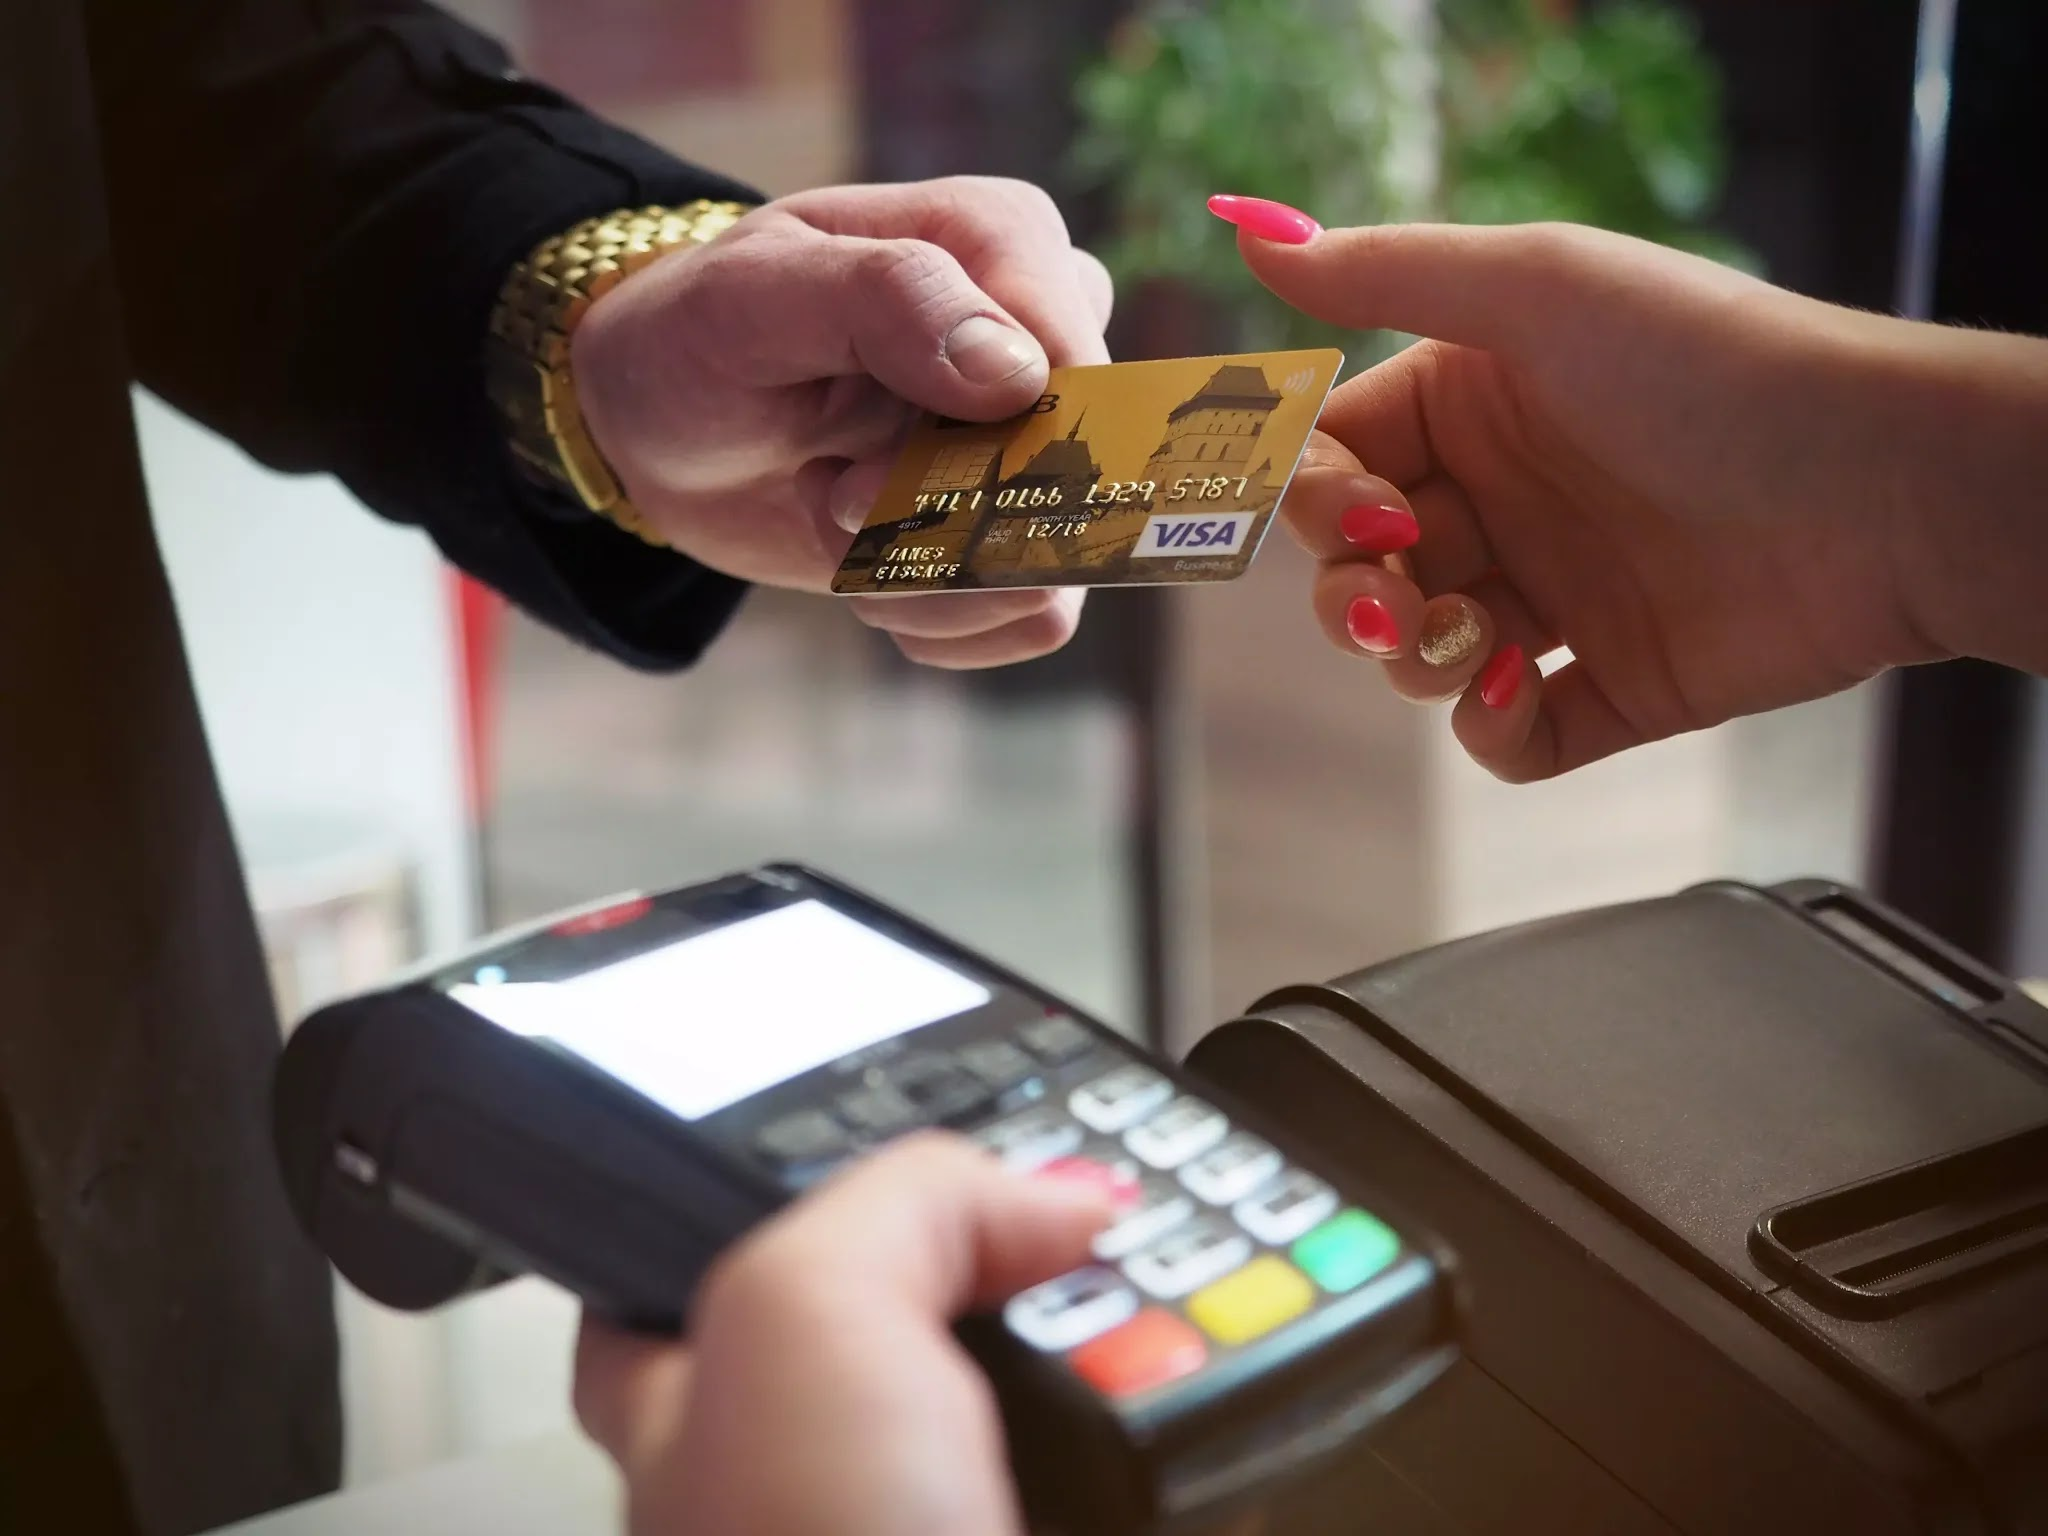 credit cards for students, best credit cards,online credit card payment, gold card,online credit card,free credit cards,virtual credit card,fake credit card, credit card interest rates,how to apply for a credit card, credit card benefits